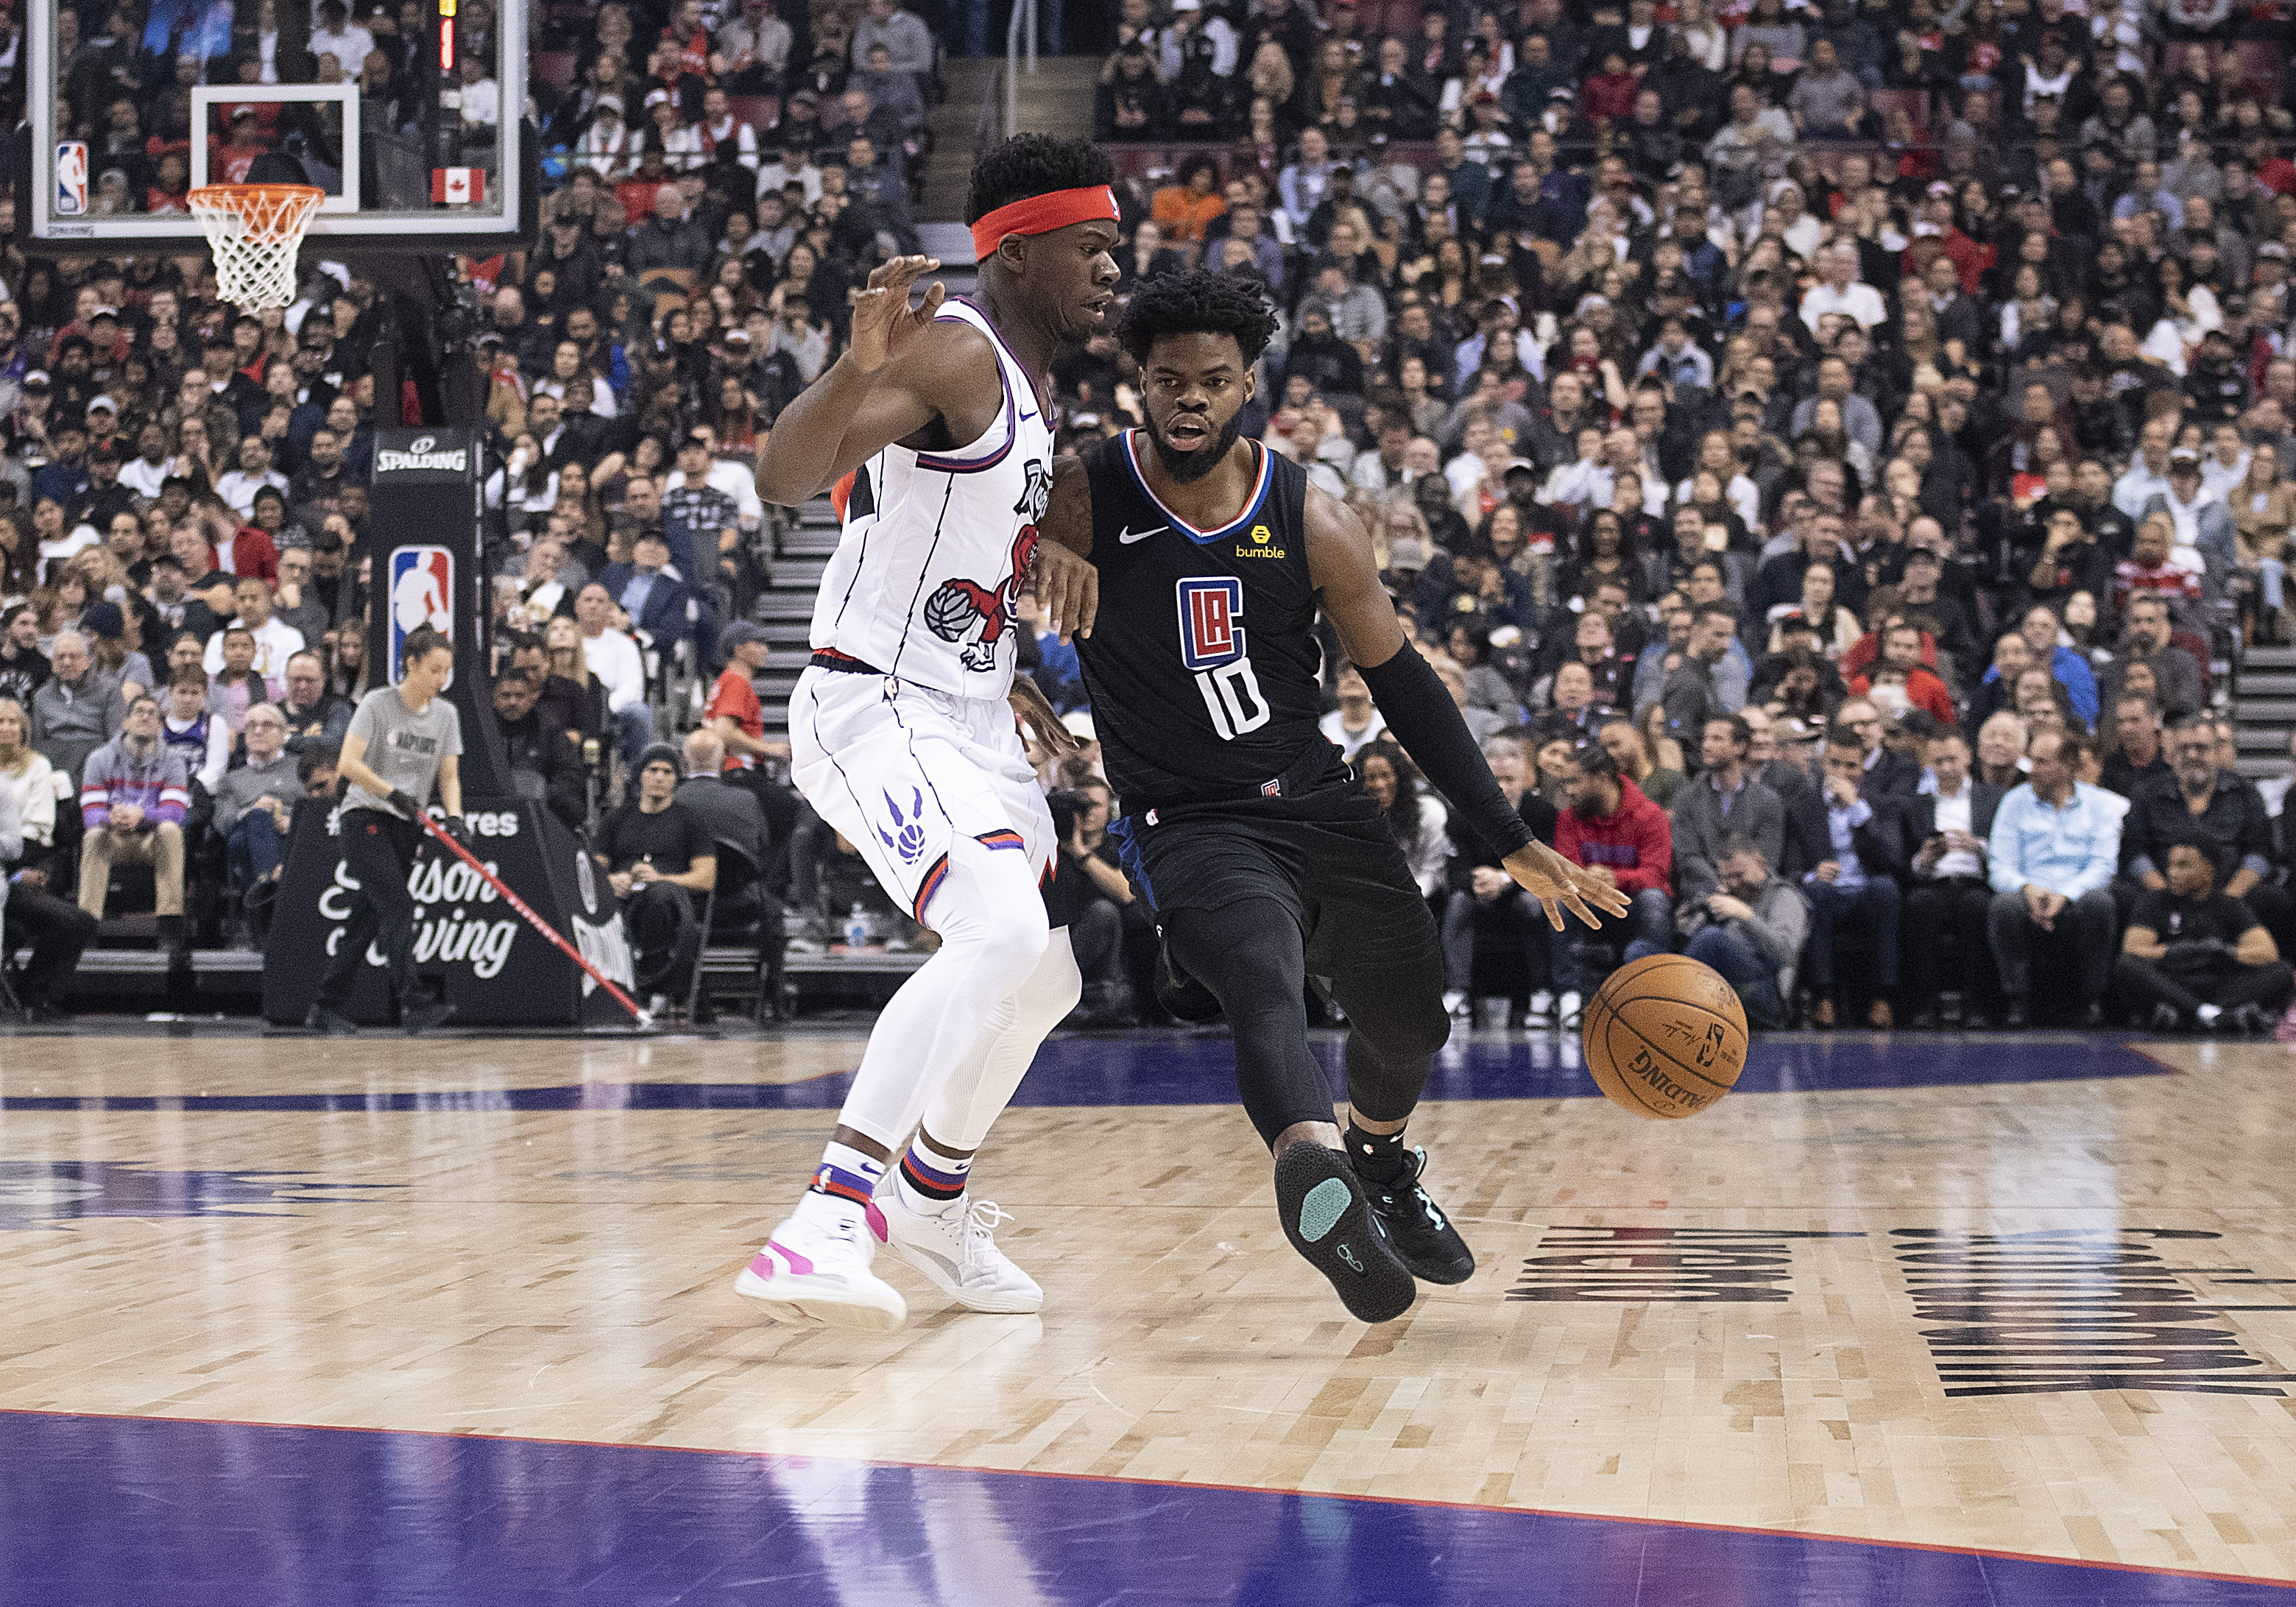 Shorthanded Clippers soldier on in Minnesota